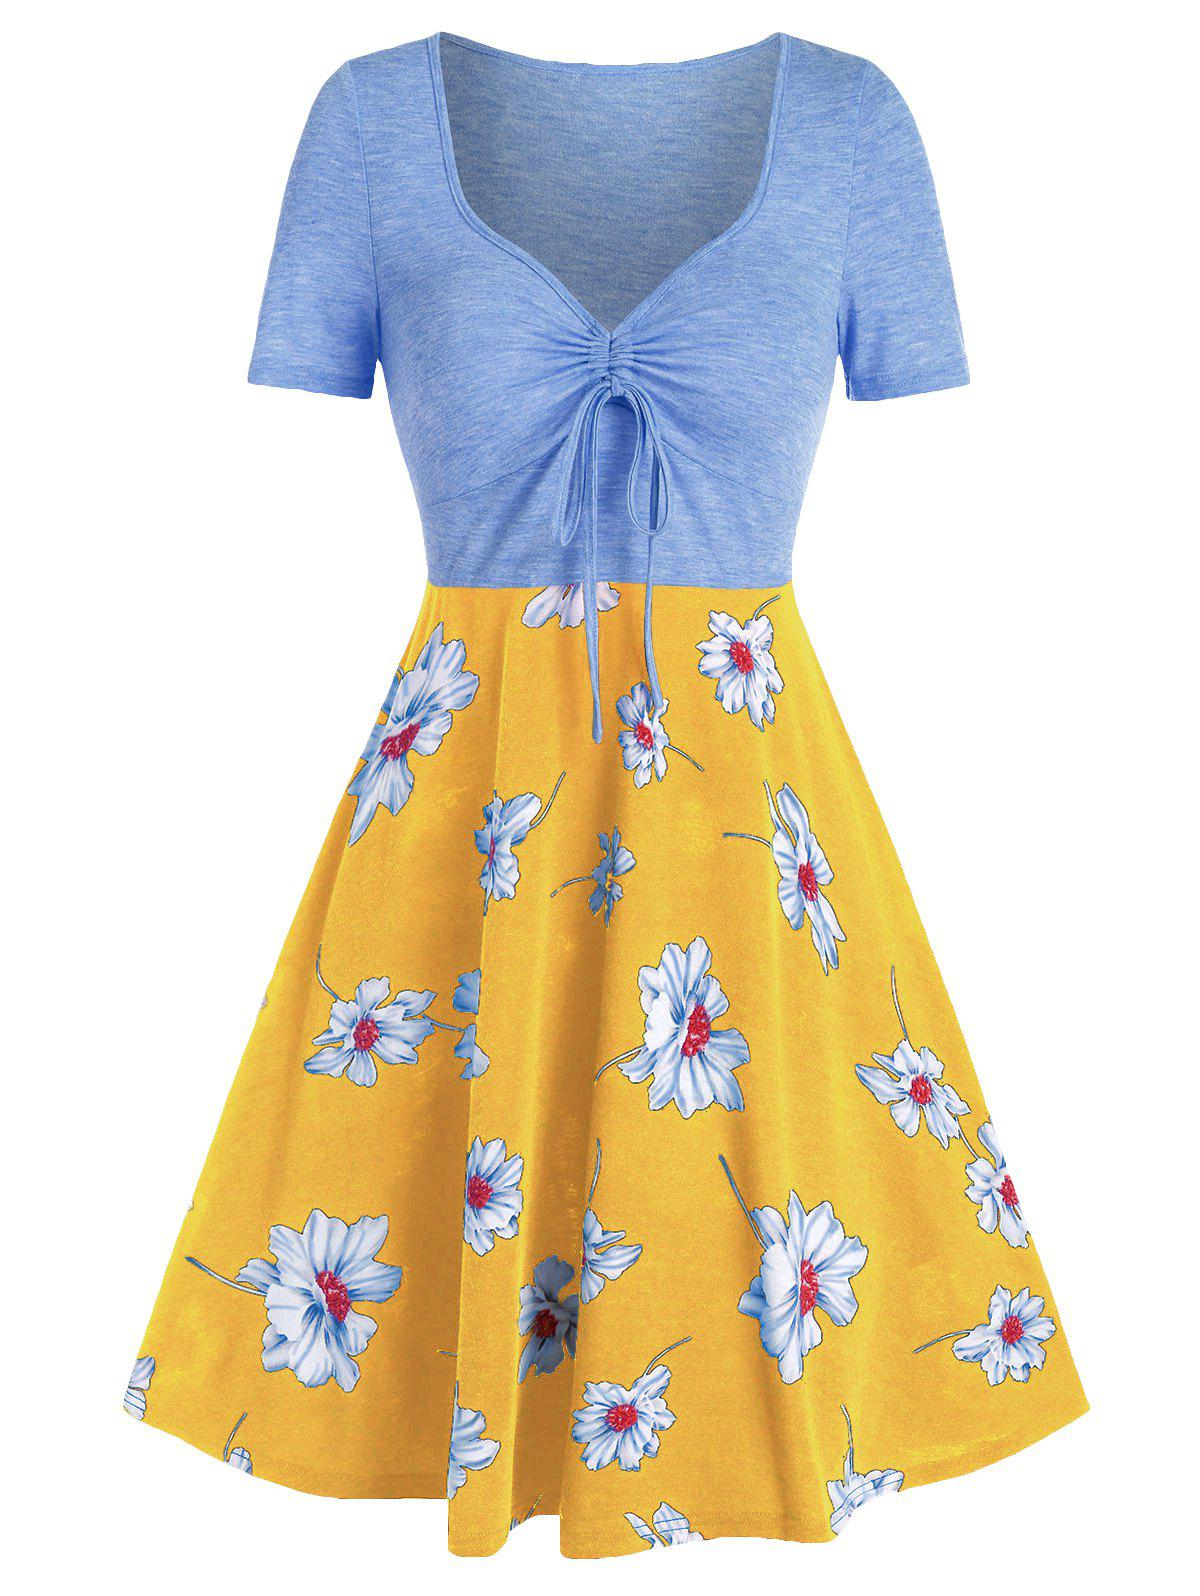 Printed Floral Drawstring High Waist Dress - LIGHT SKY BLUE 2XL